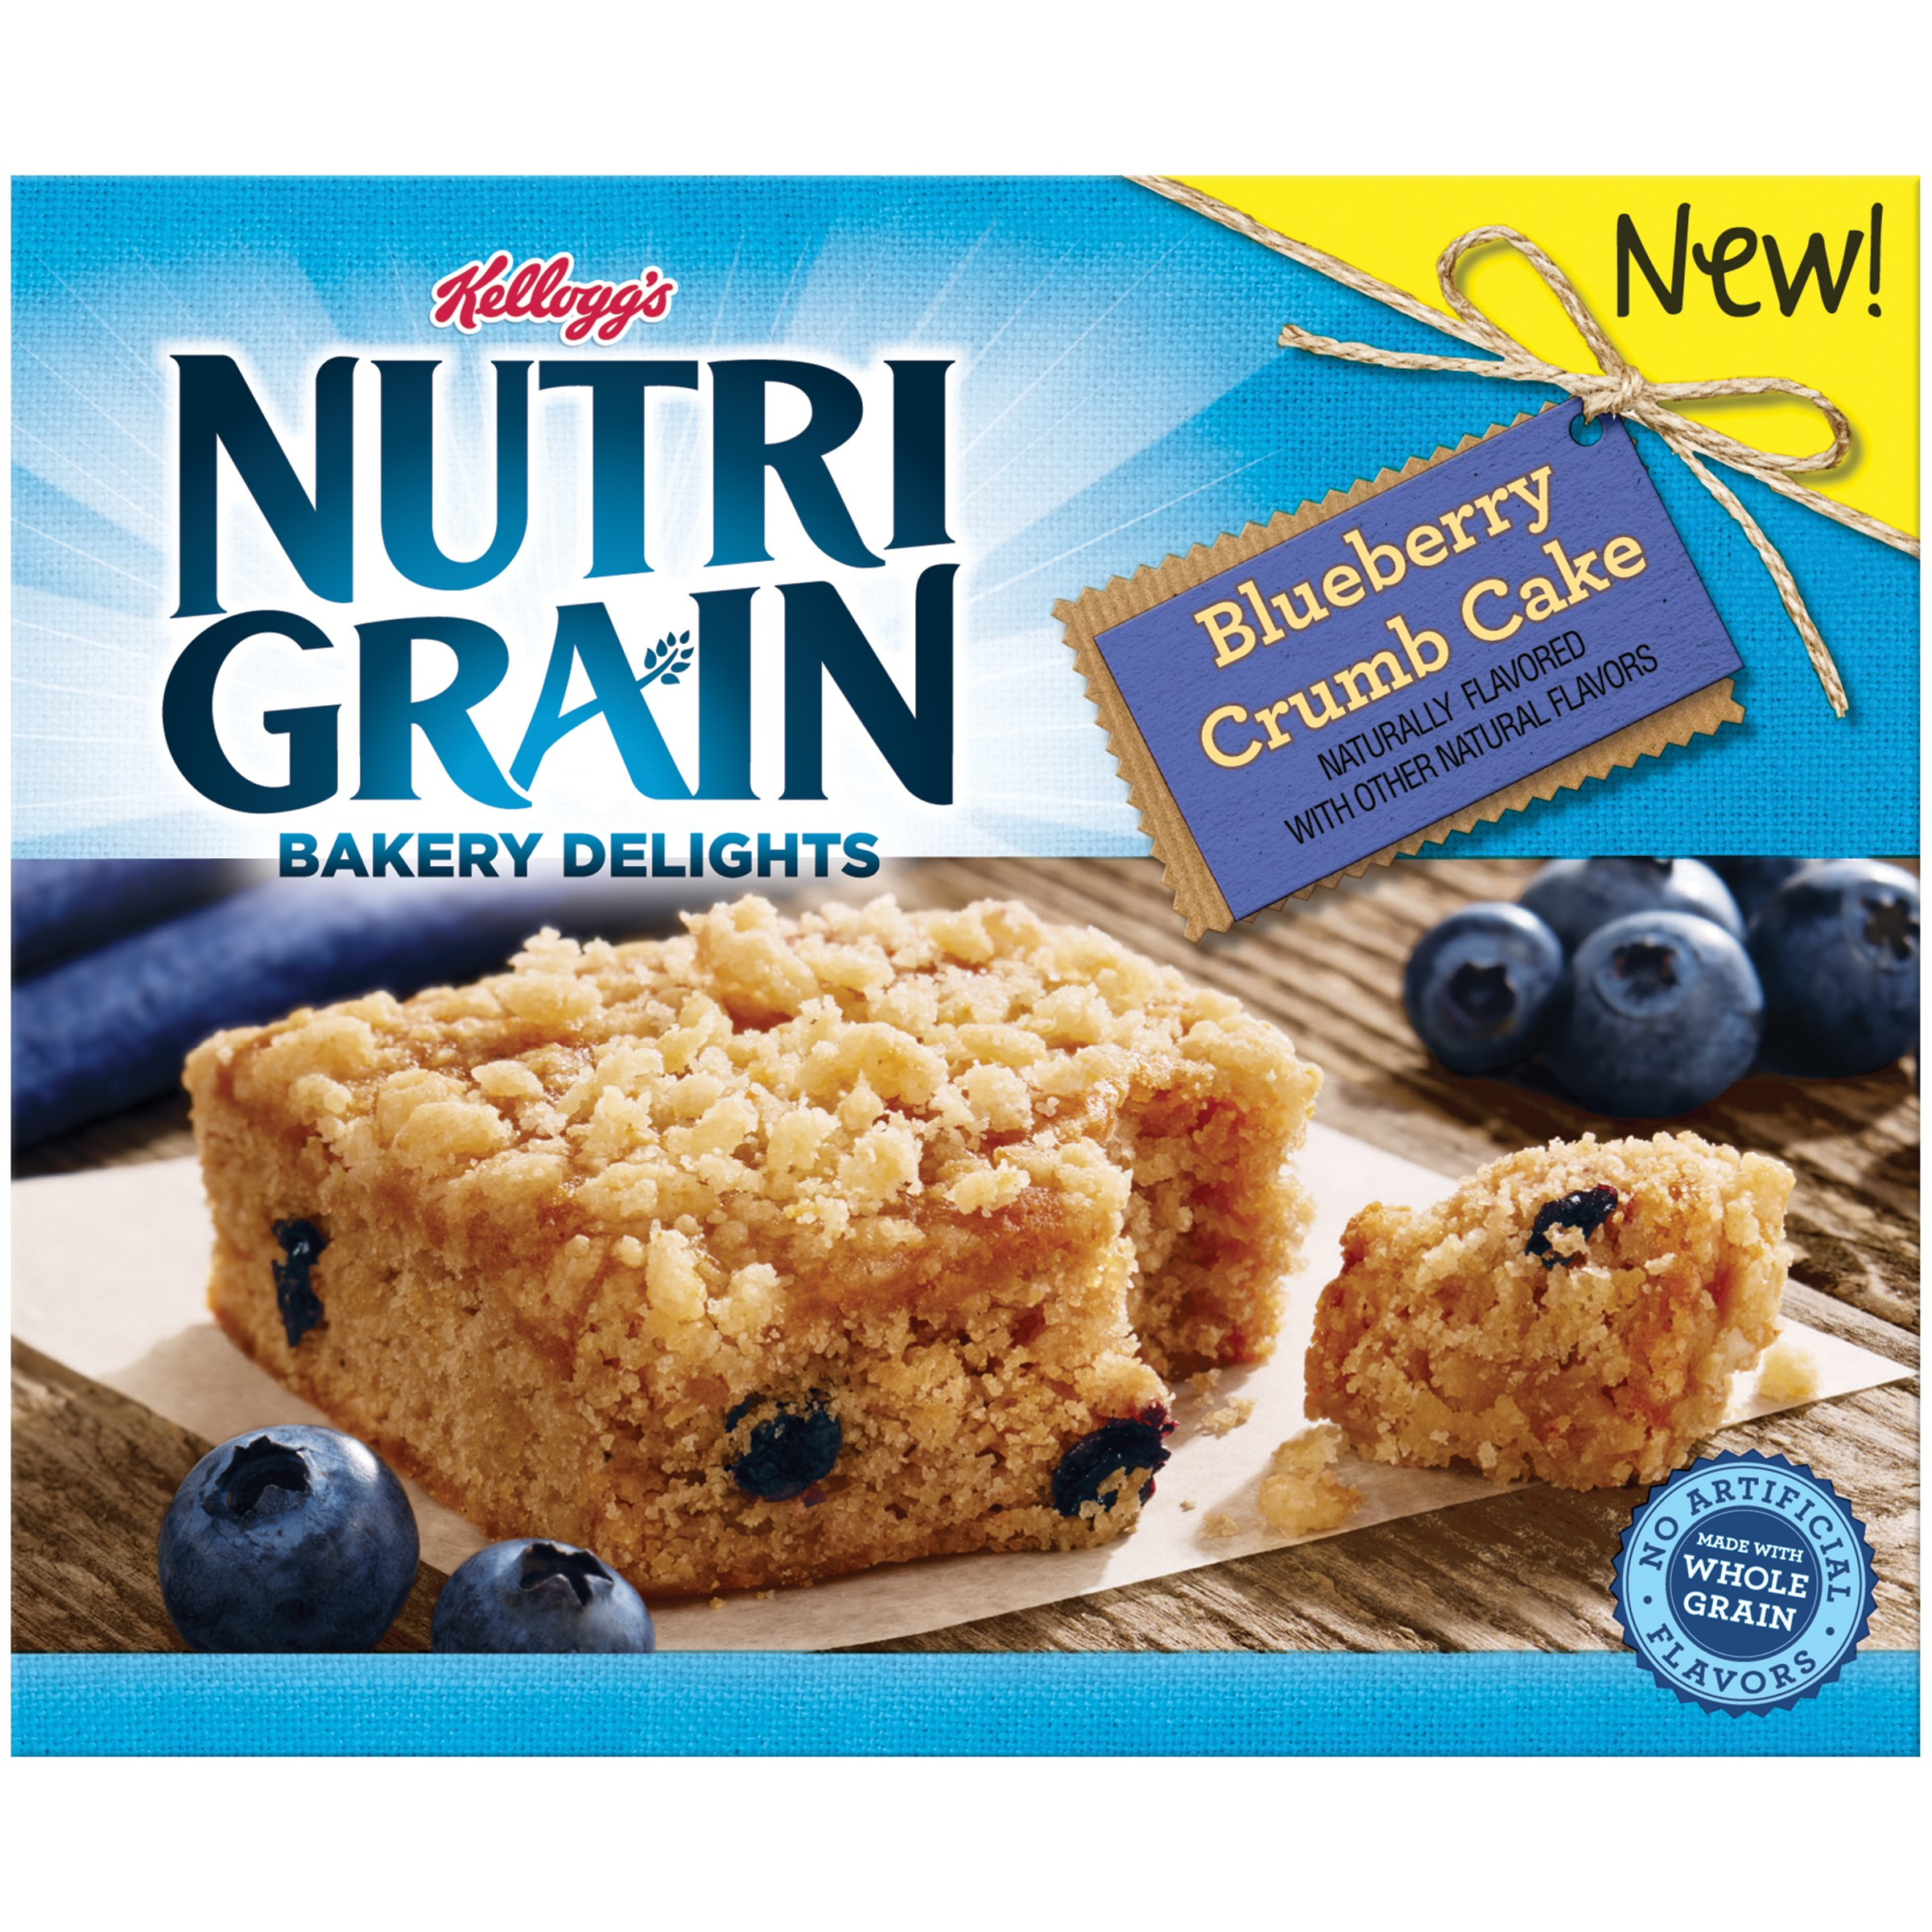 Nutri-Grain Bakery Delights, Blueberry Crumb Cake, 5 Ct